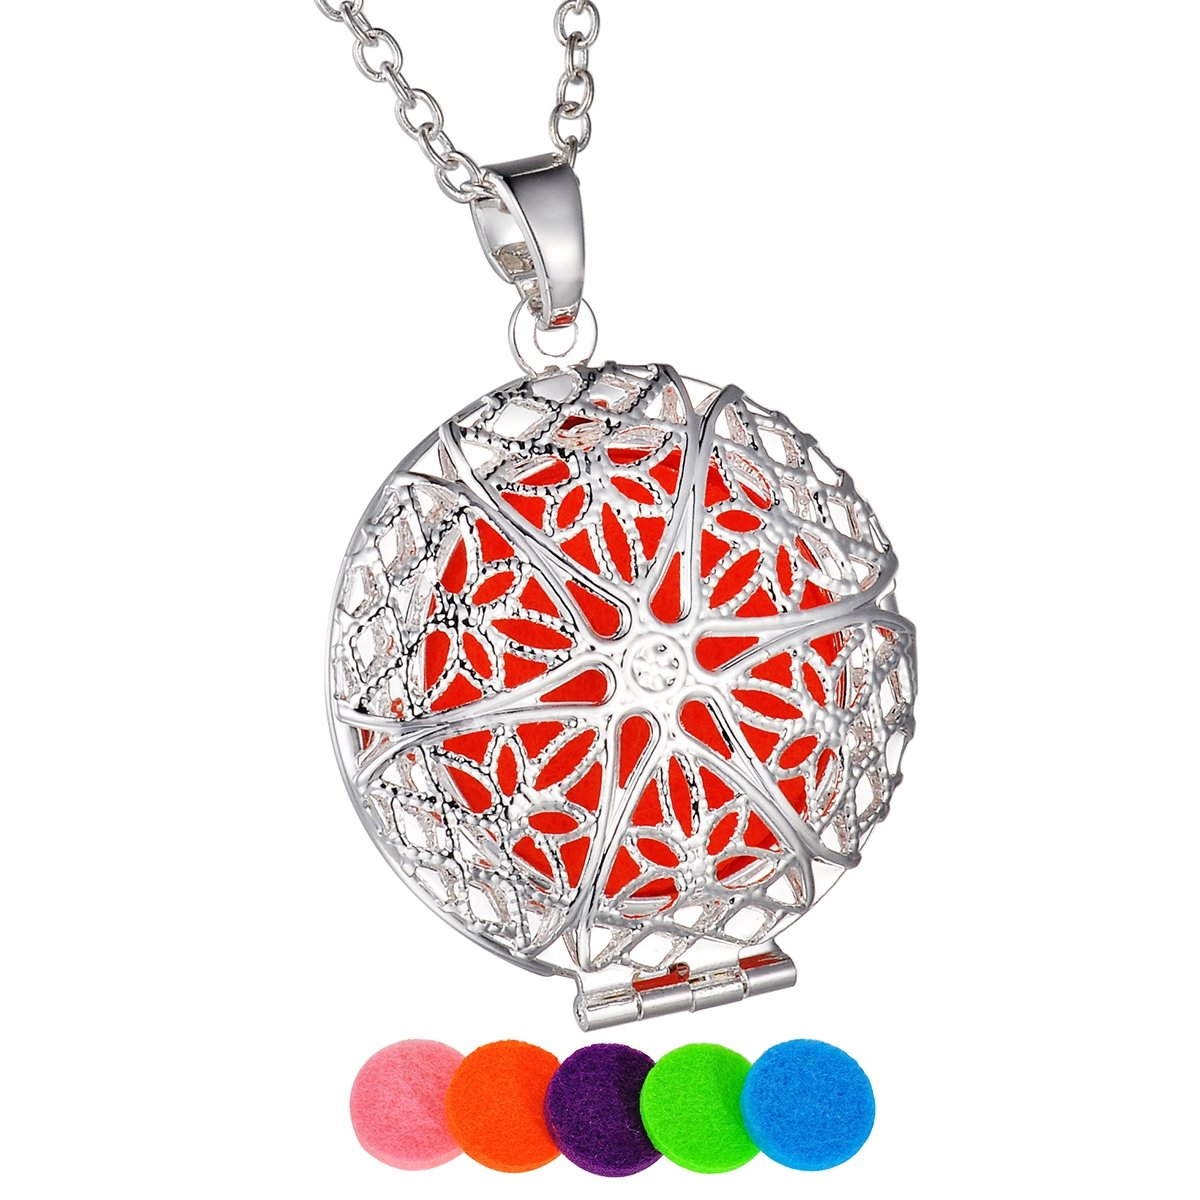 HooAMI Flower Aromatherapy Essential Oil Diffuser Necklace Pendant Locket Jewelry TY UPIE10683